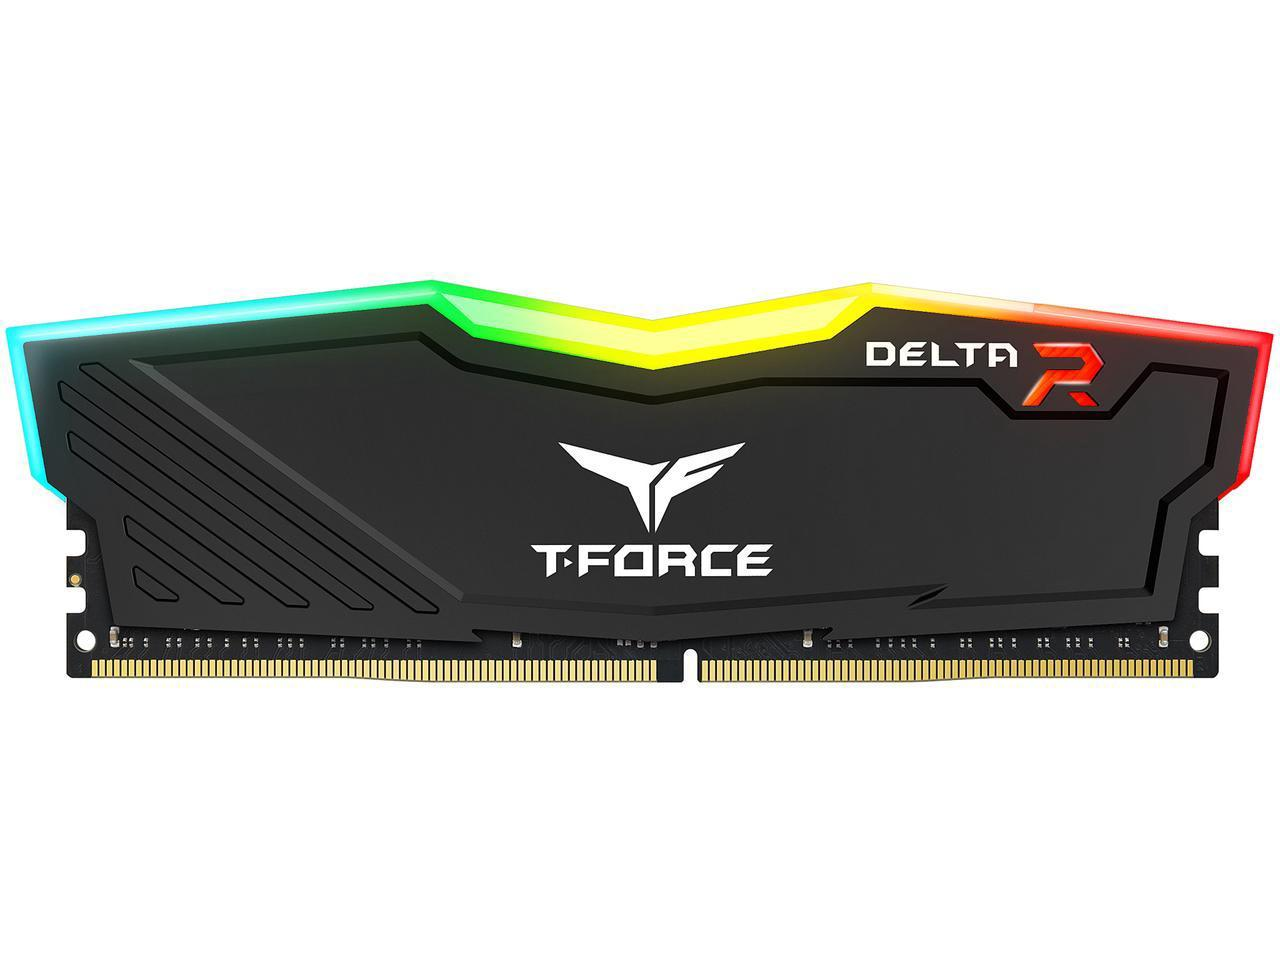 TeamGroup T-Force Delta II RGB Series 32GB (2 x 16 GB) DDR4 SDRAM DDR4 3000 Desktop Memory Model TF3D432G3000HC16CDC01